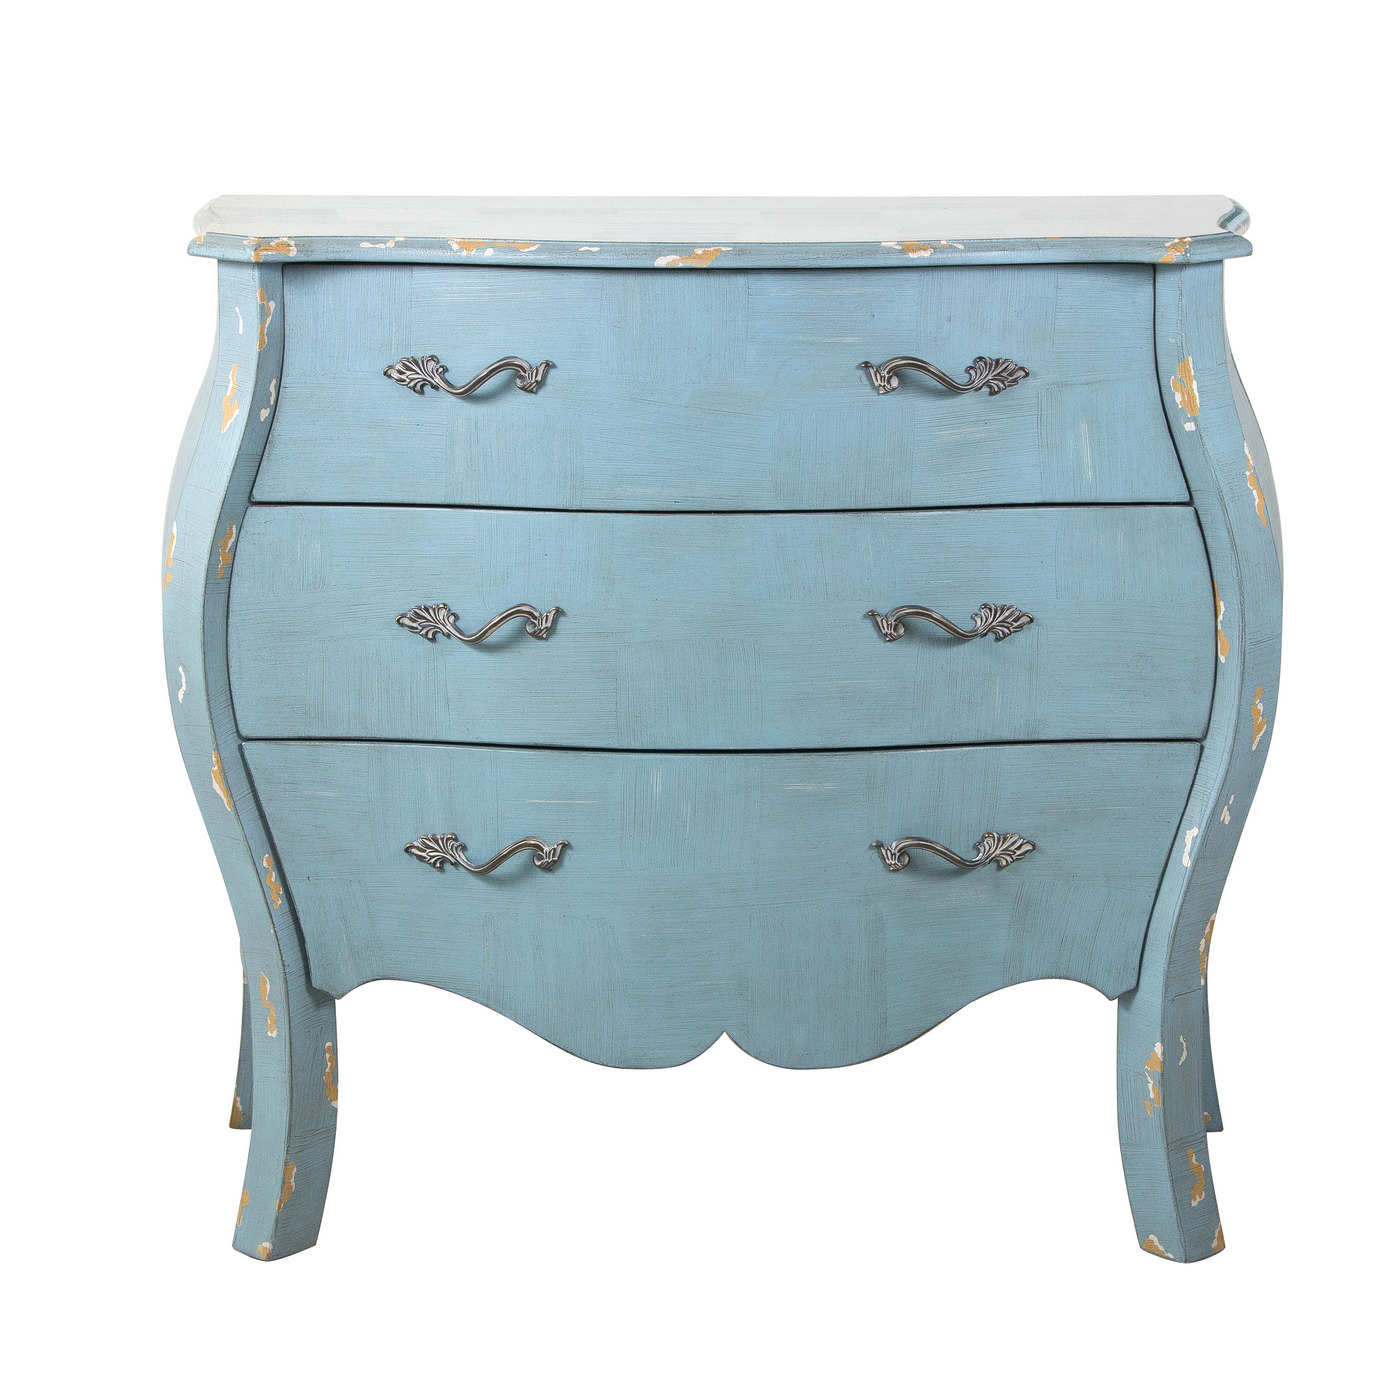 Chapelle French Country Distressed Blue 3 Drawer Bombay